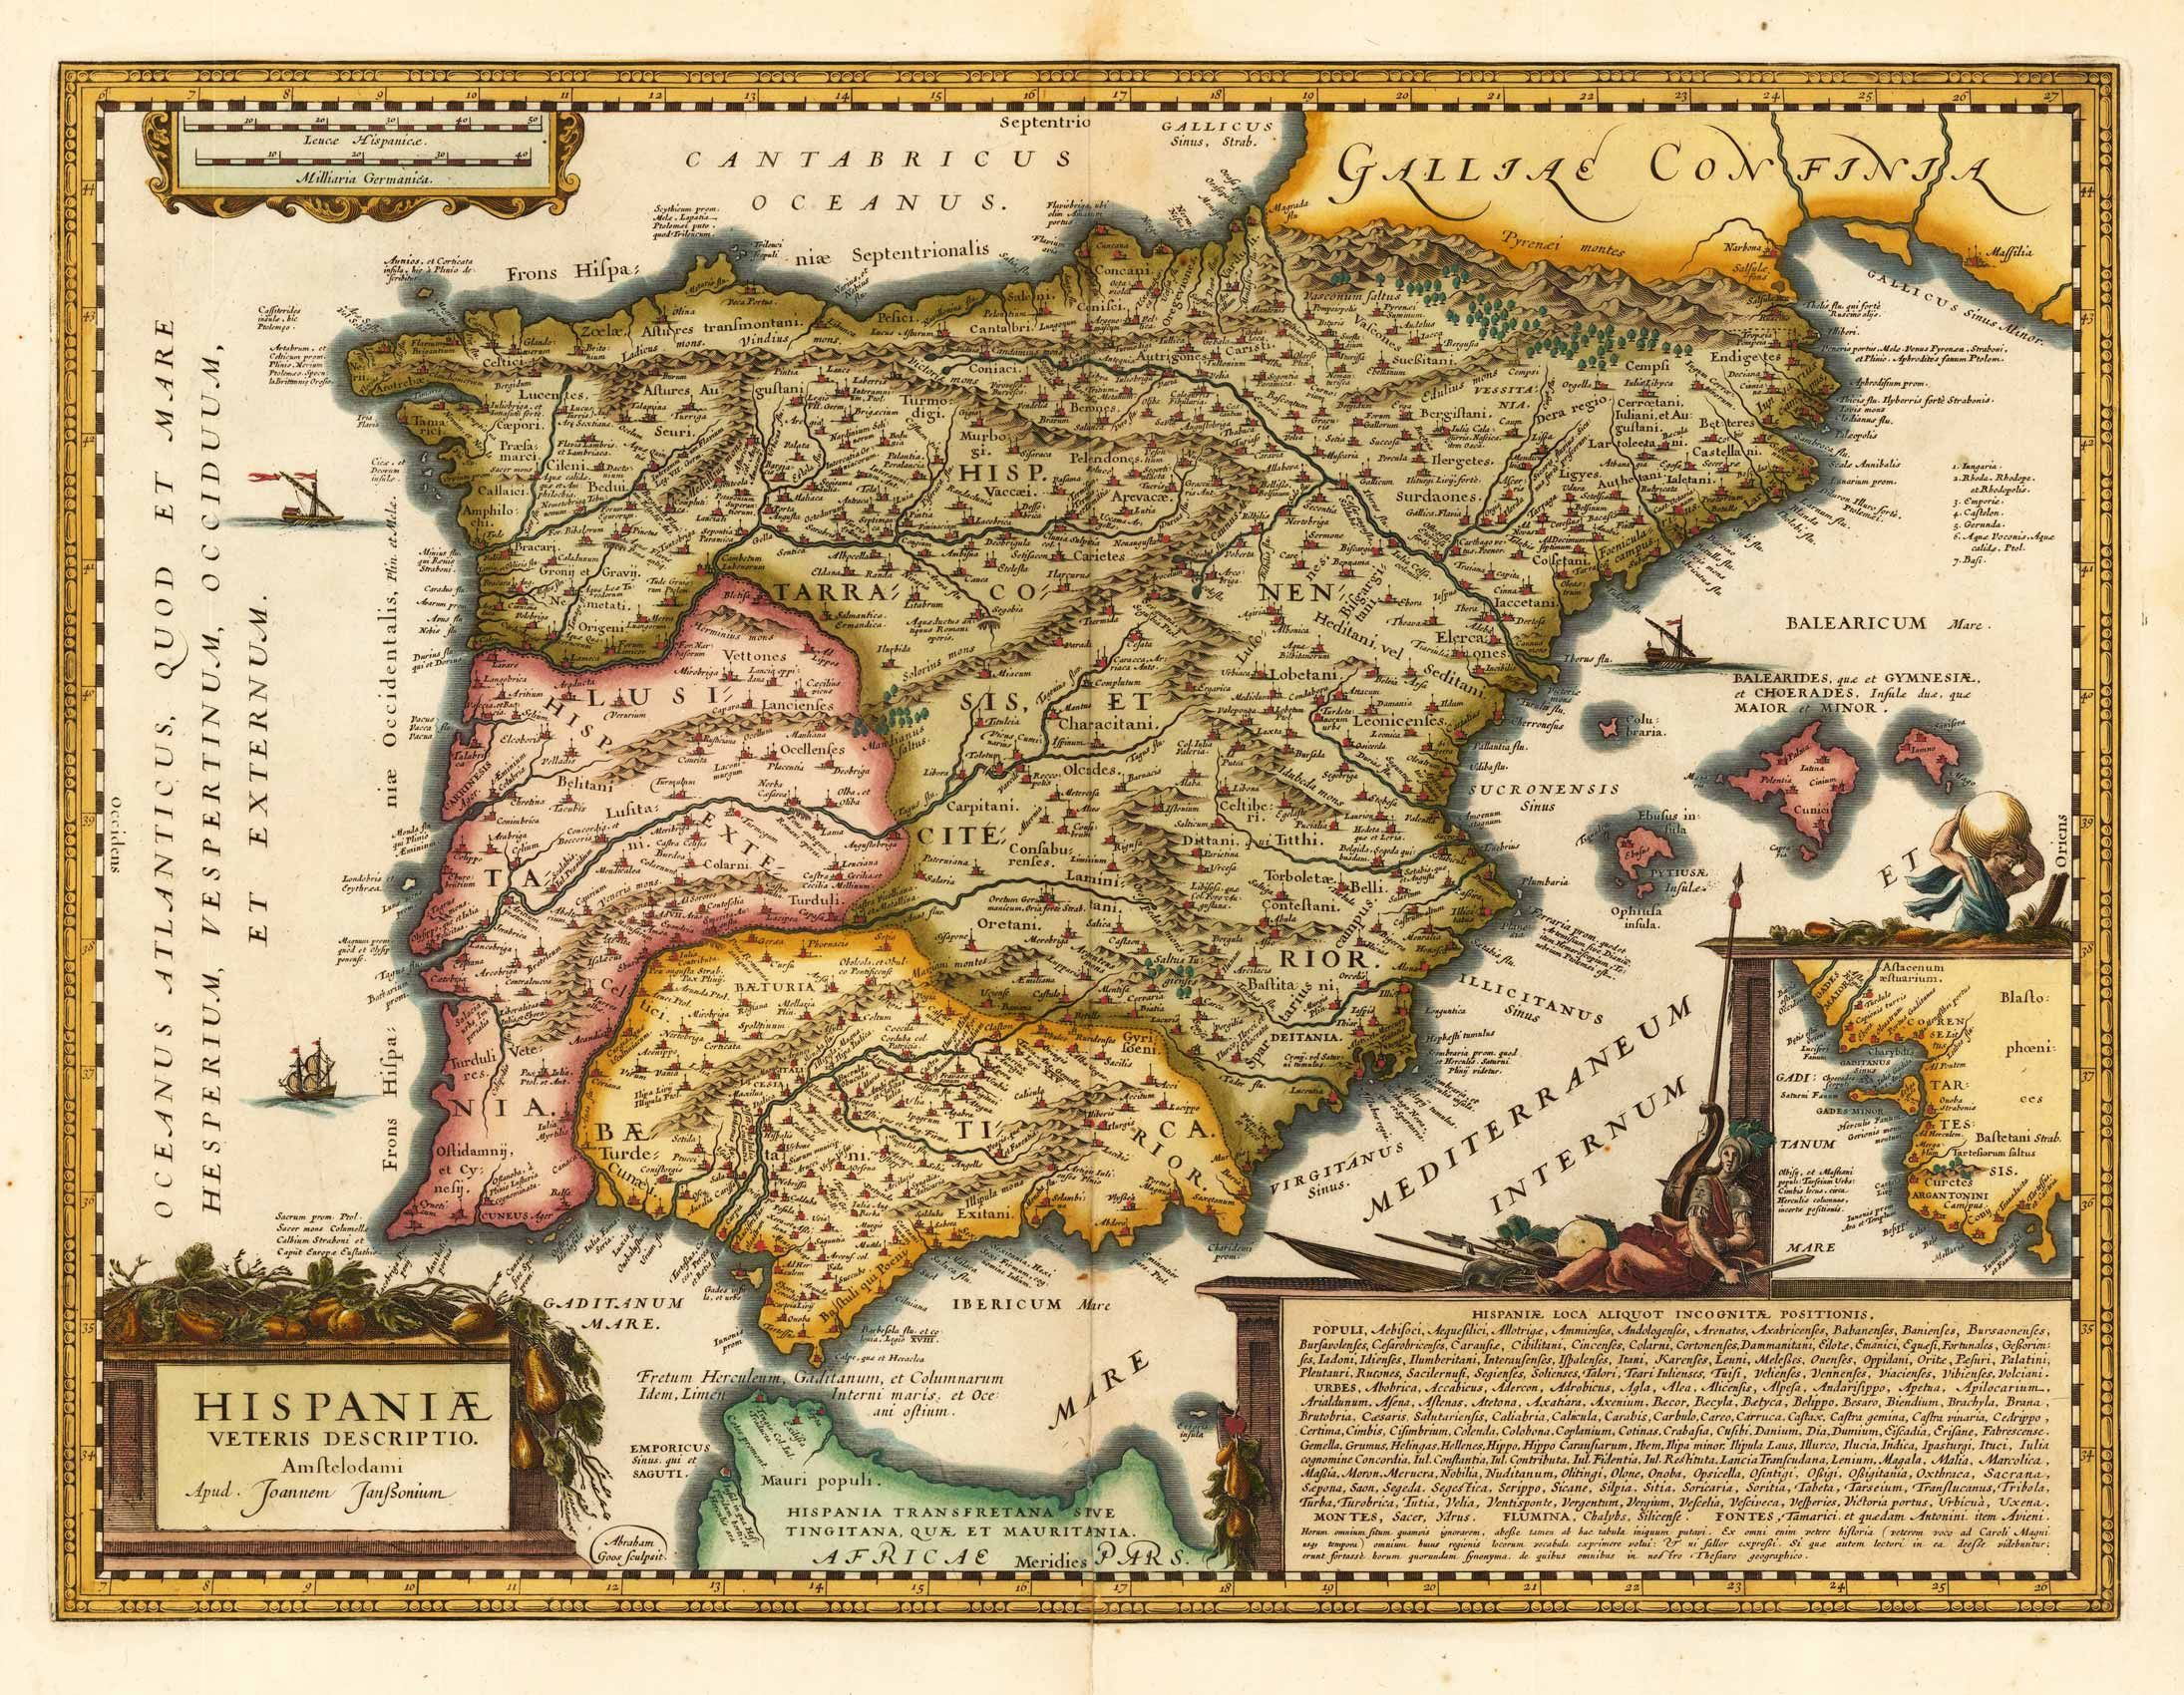 Map Of Spain Old.Antique Map Of Spain And Prtual Joan Janssonius 1650 Maps Map